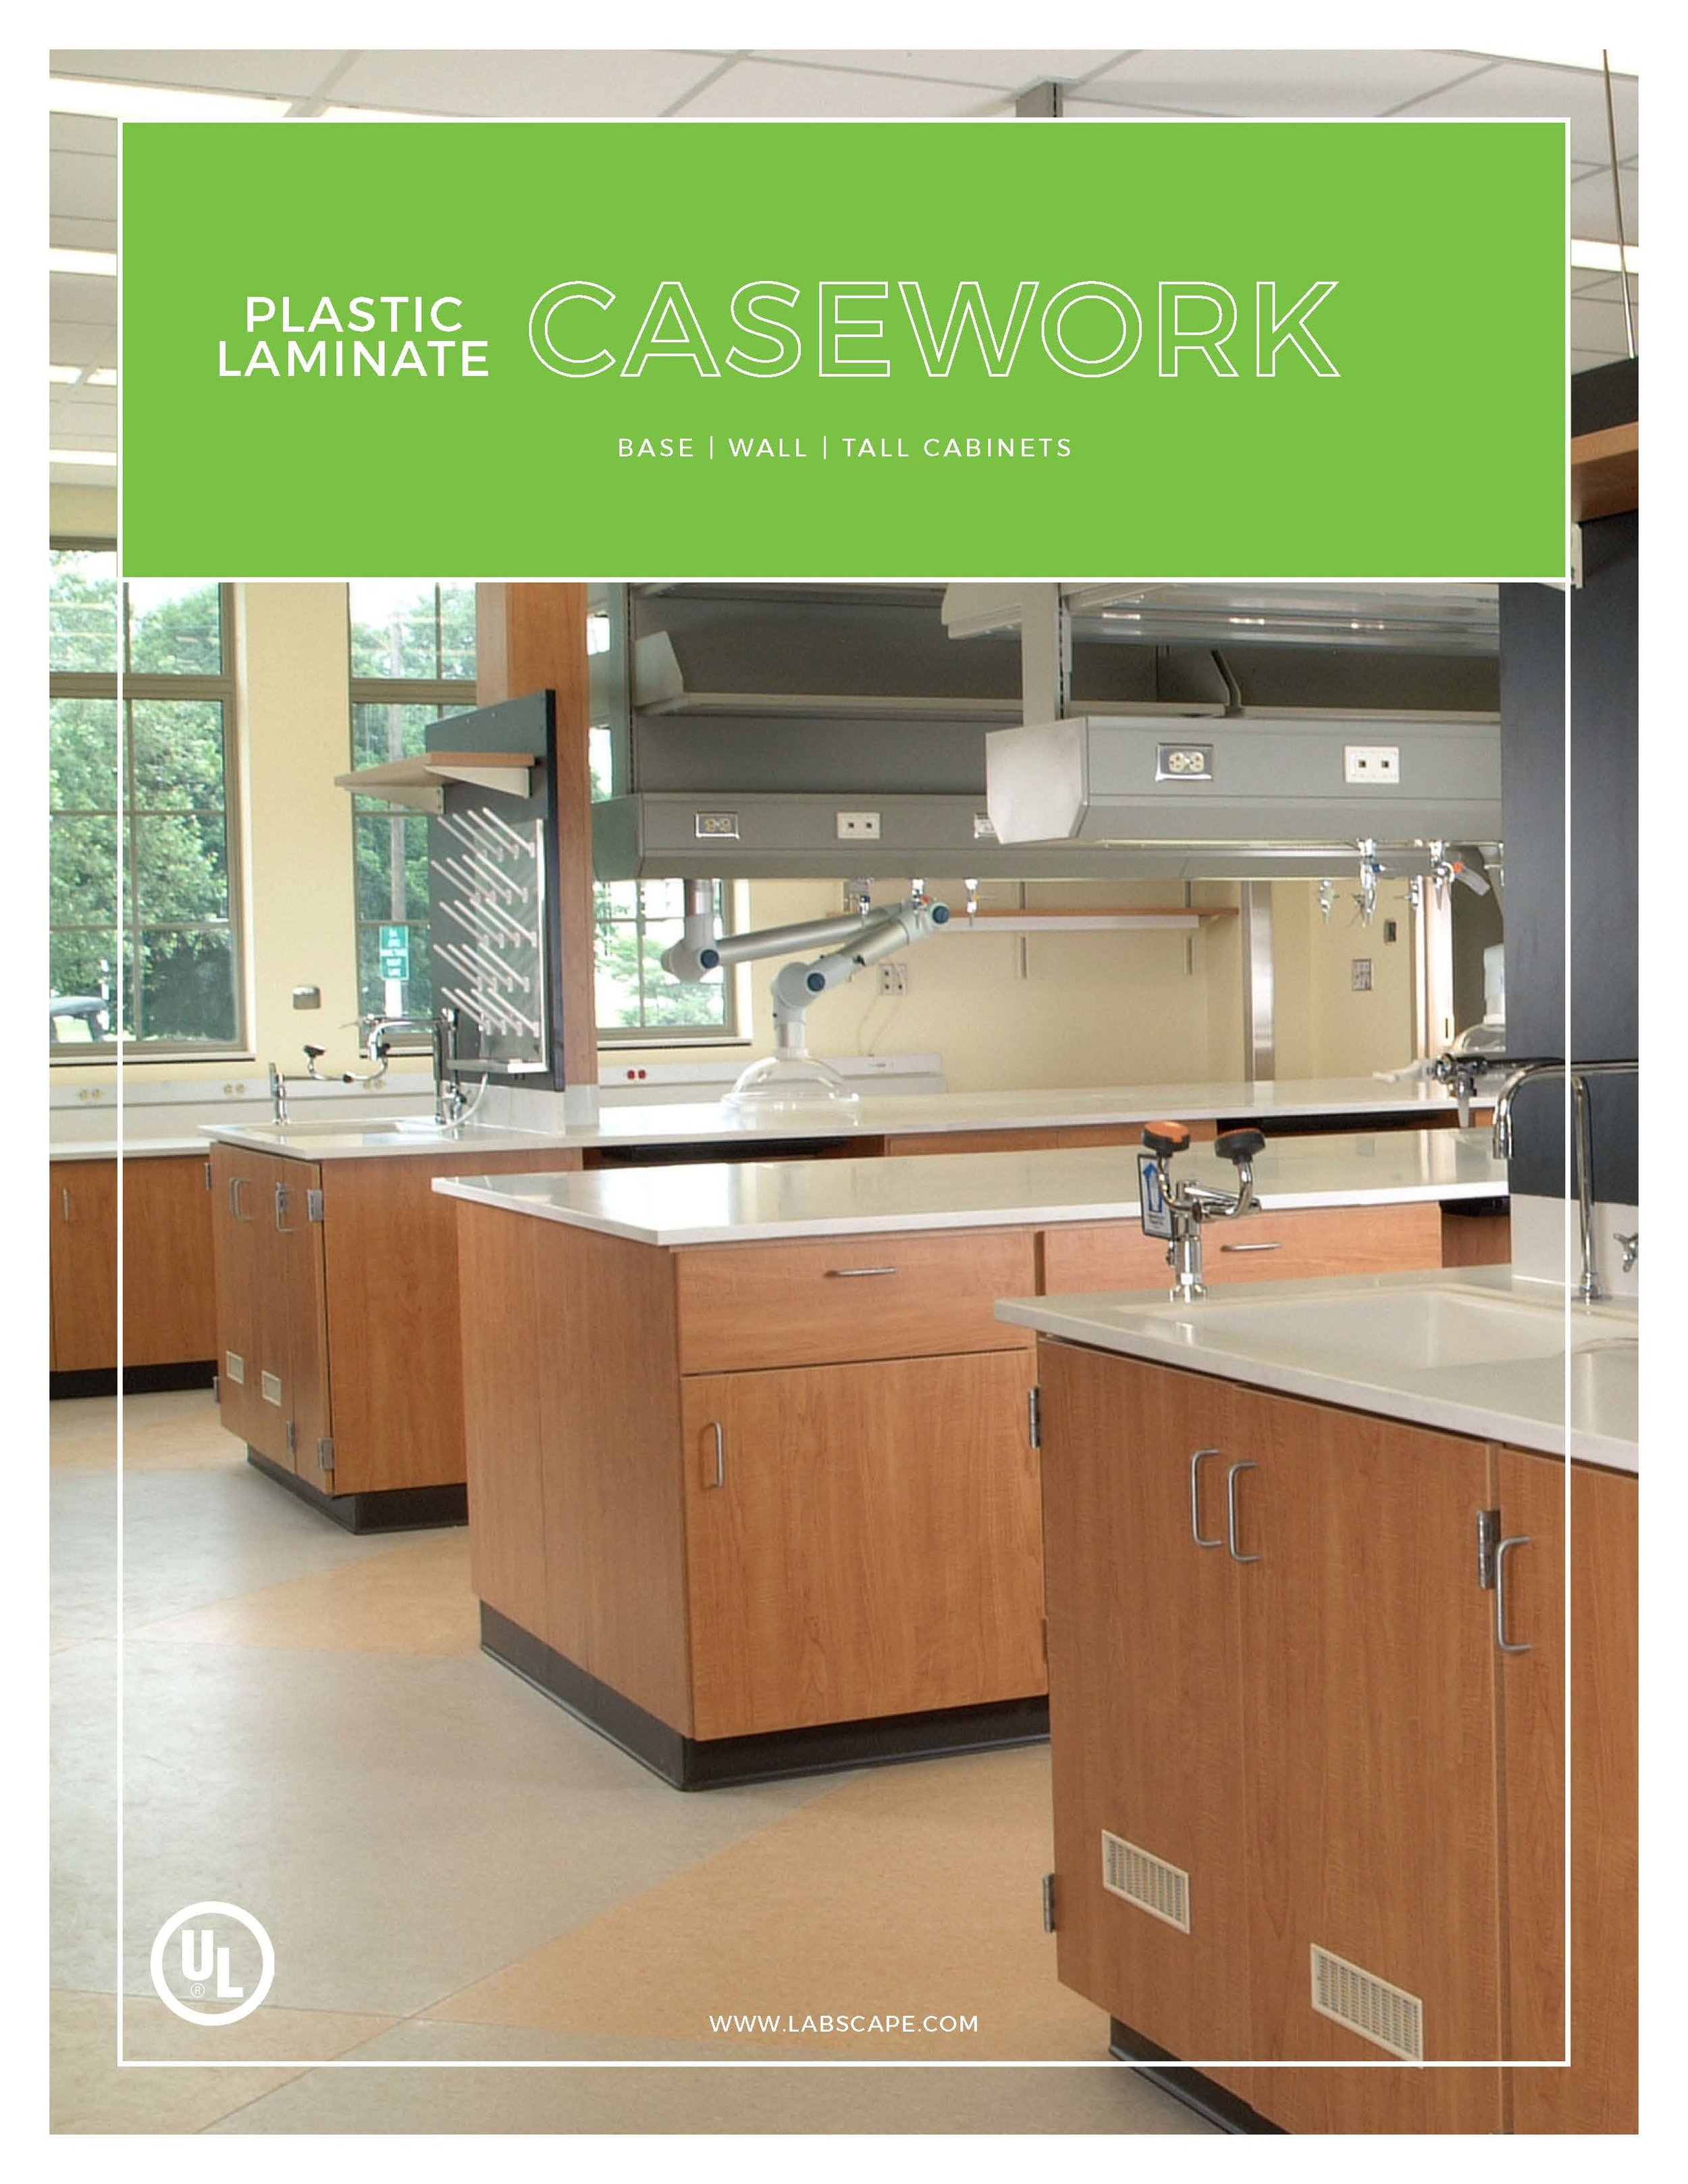 Labscape Plastic-casework-catalog_Page_1.jpg